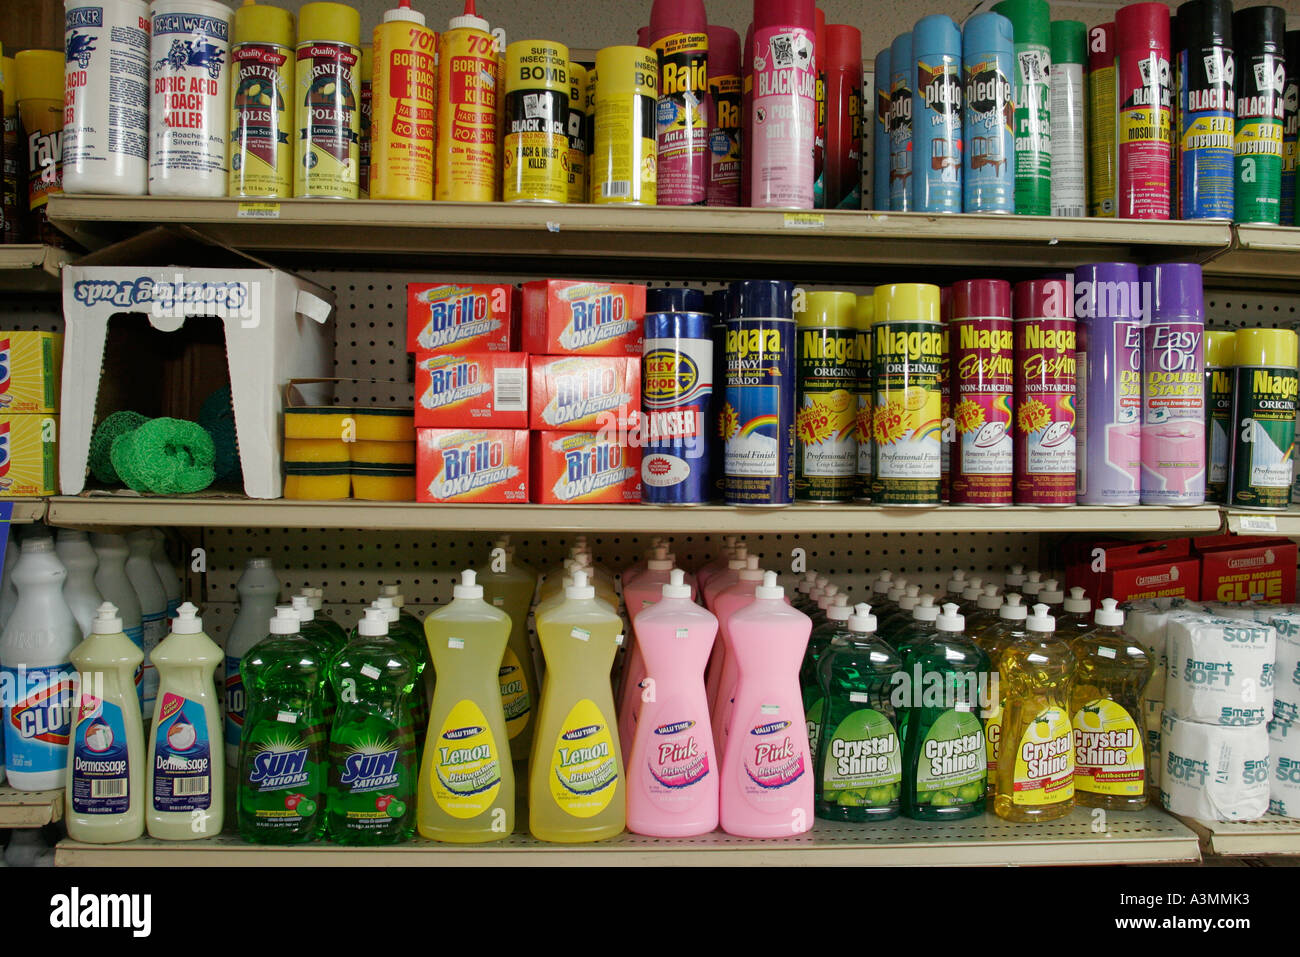 Florida FL South Miami Overtown L & J Groceries shelf shelves shelving products display sale product cleaning products soap pesticides bug Stock Photo